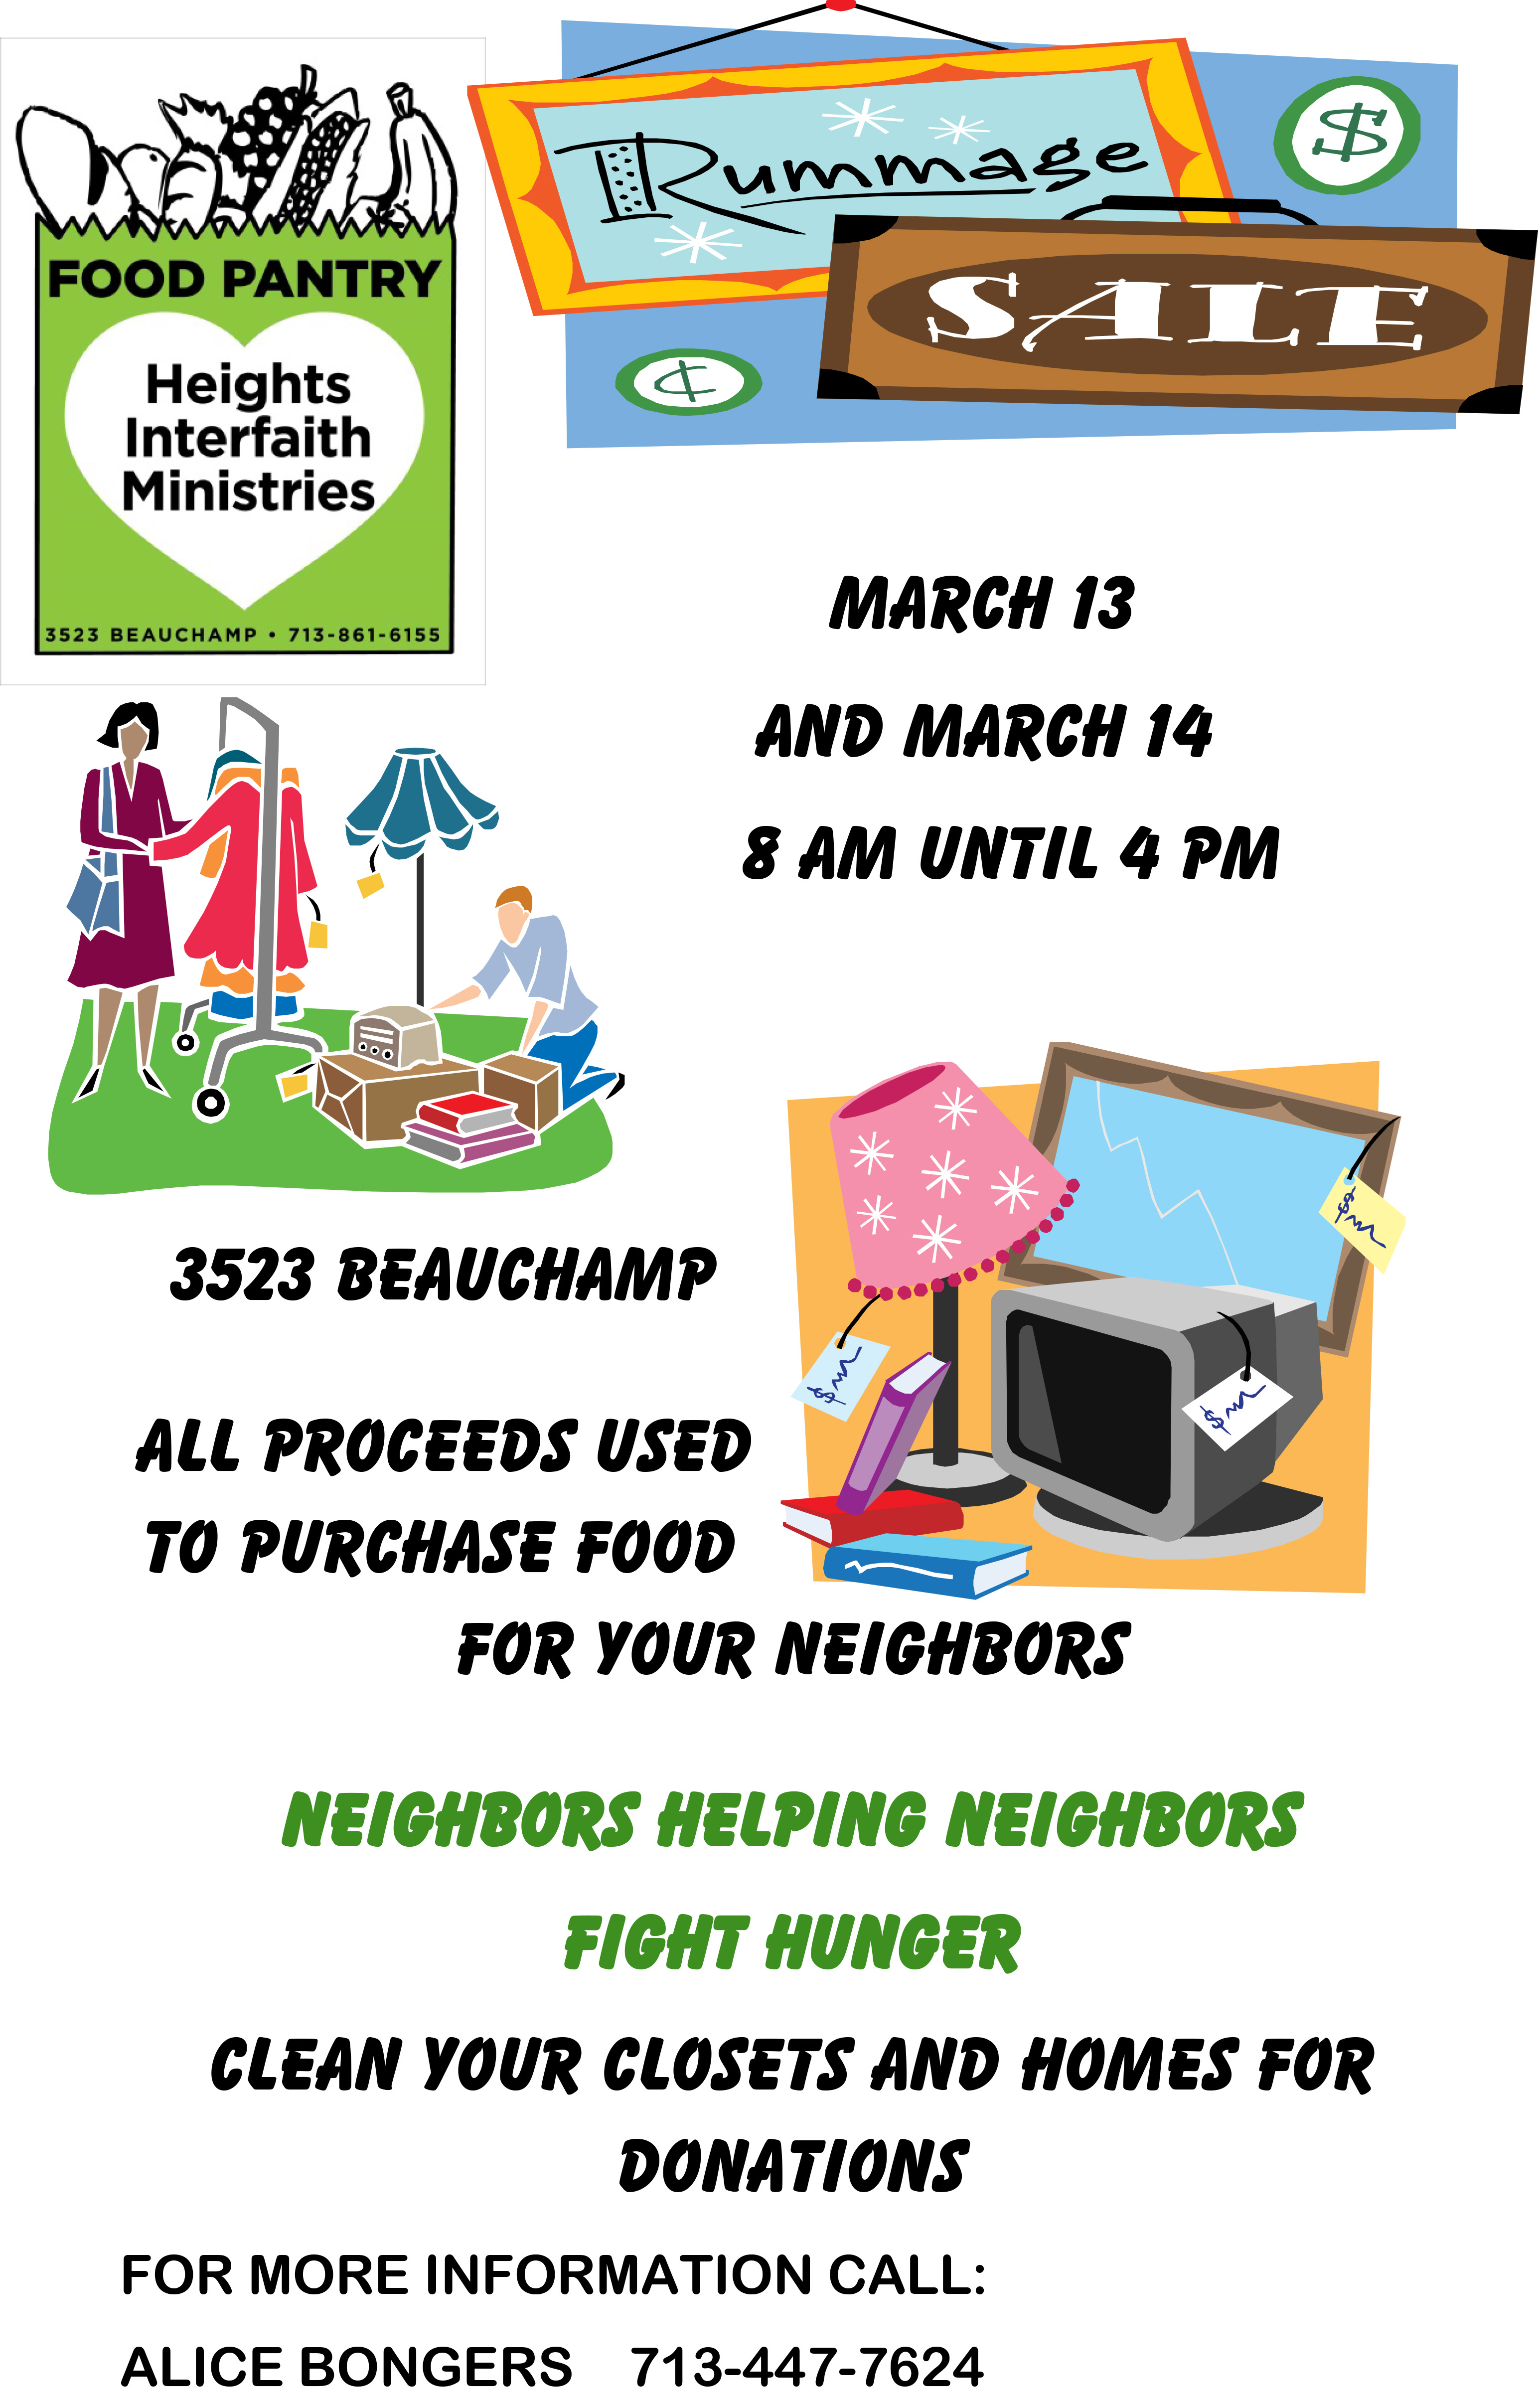 annual rummage sale coming up